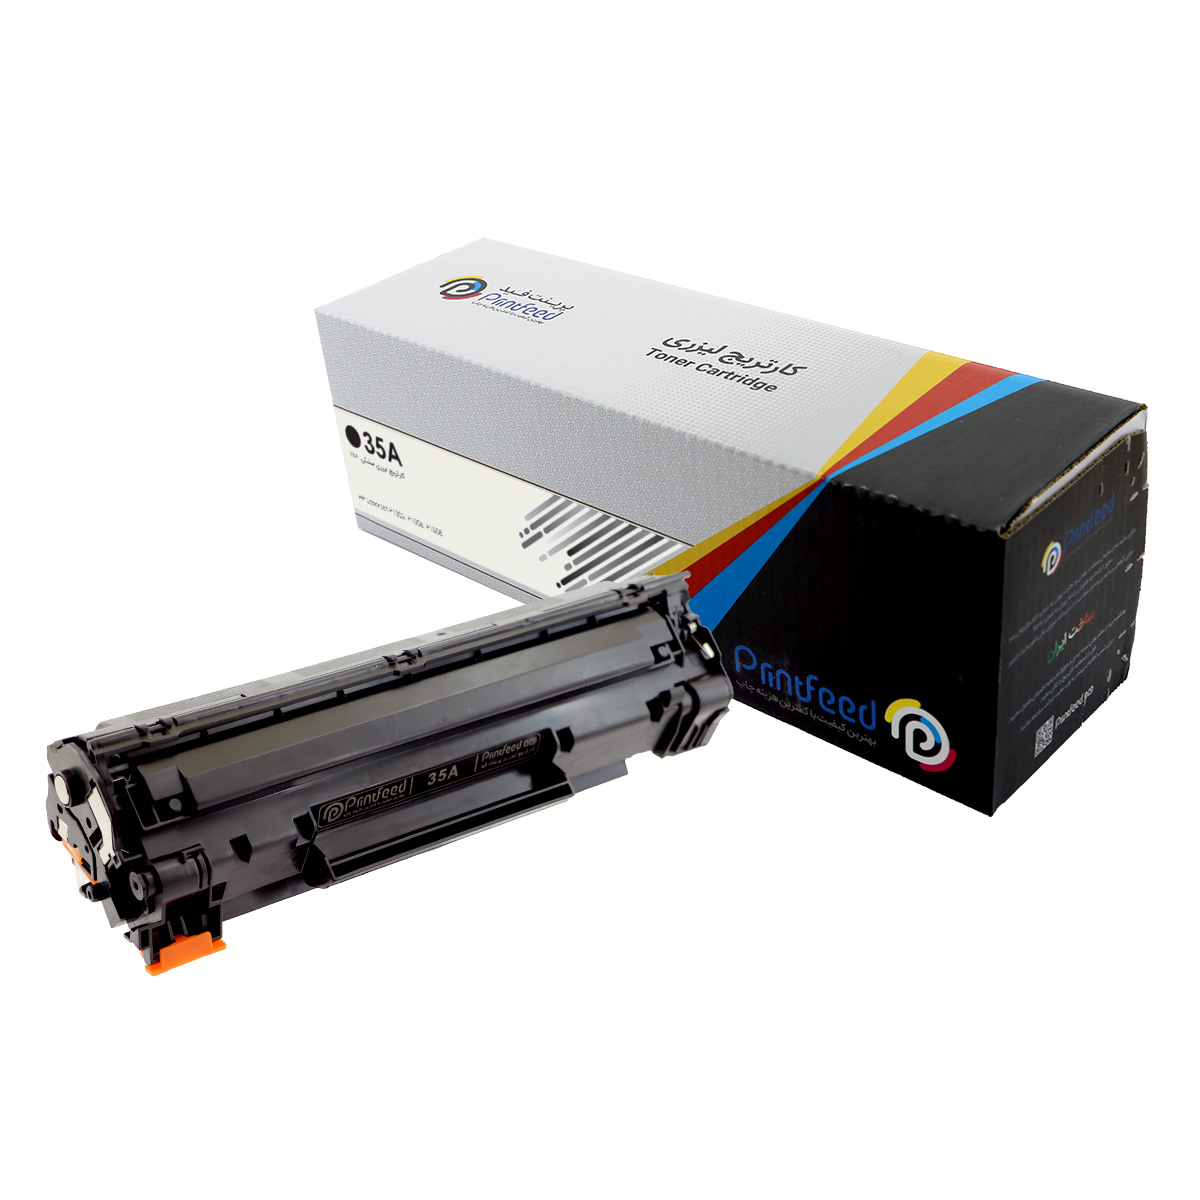 HP Laserjet 35A Black compatible cartridge